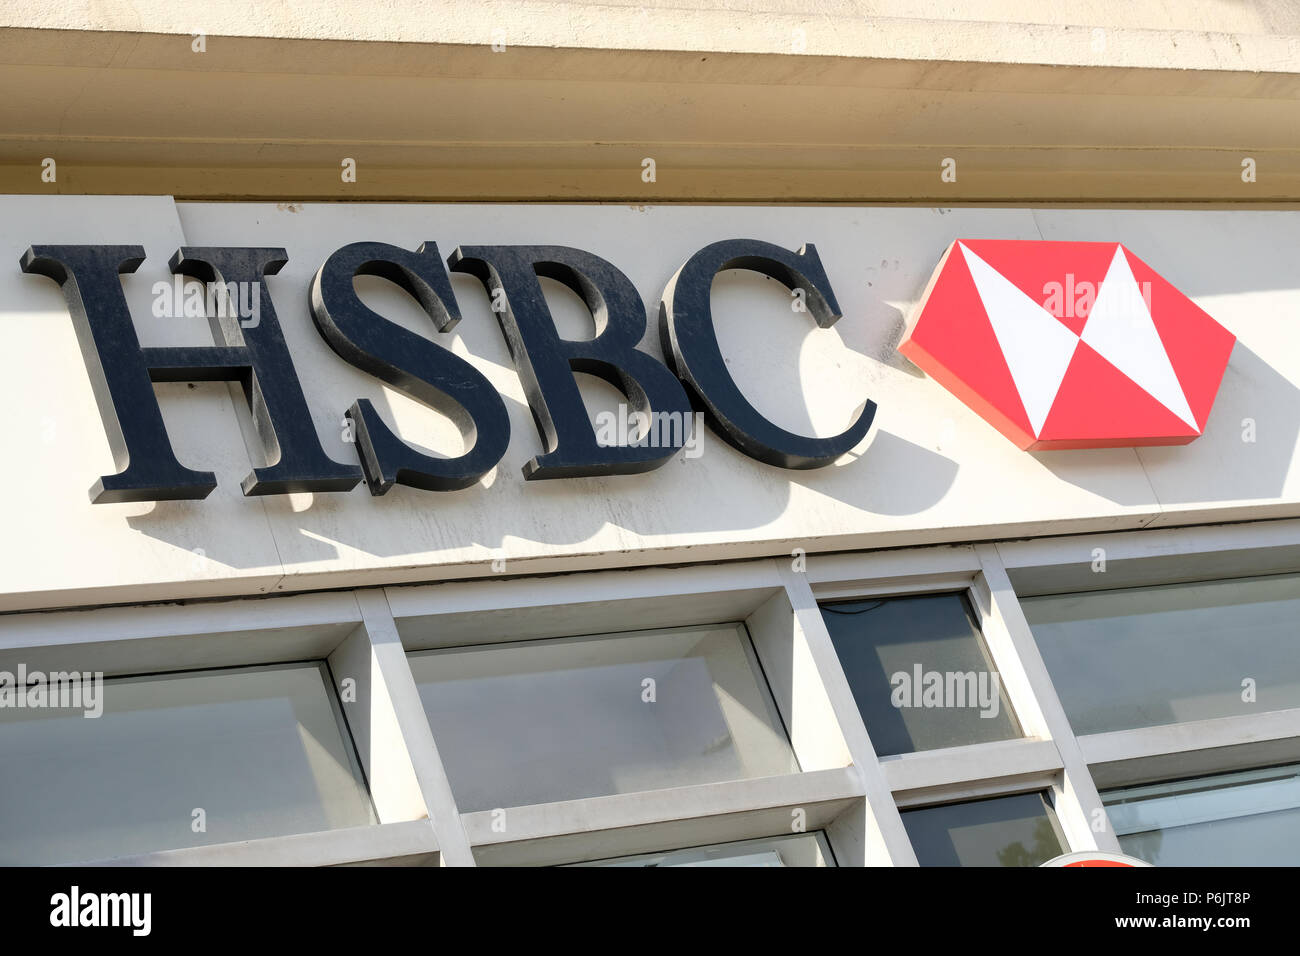 Hsbc Advertisement Stock Photos & Hsbc Advertisement Stock Images